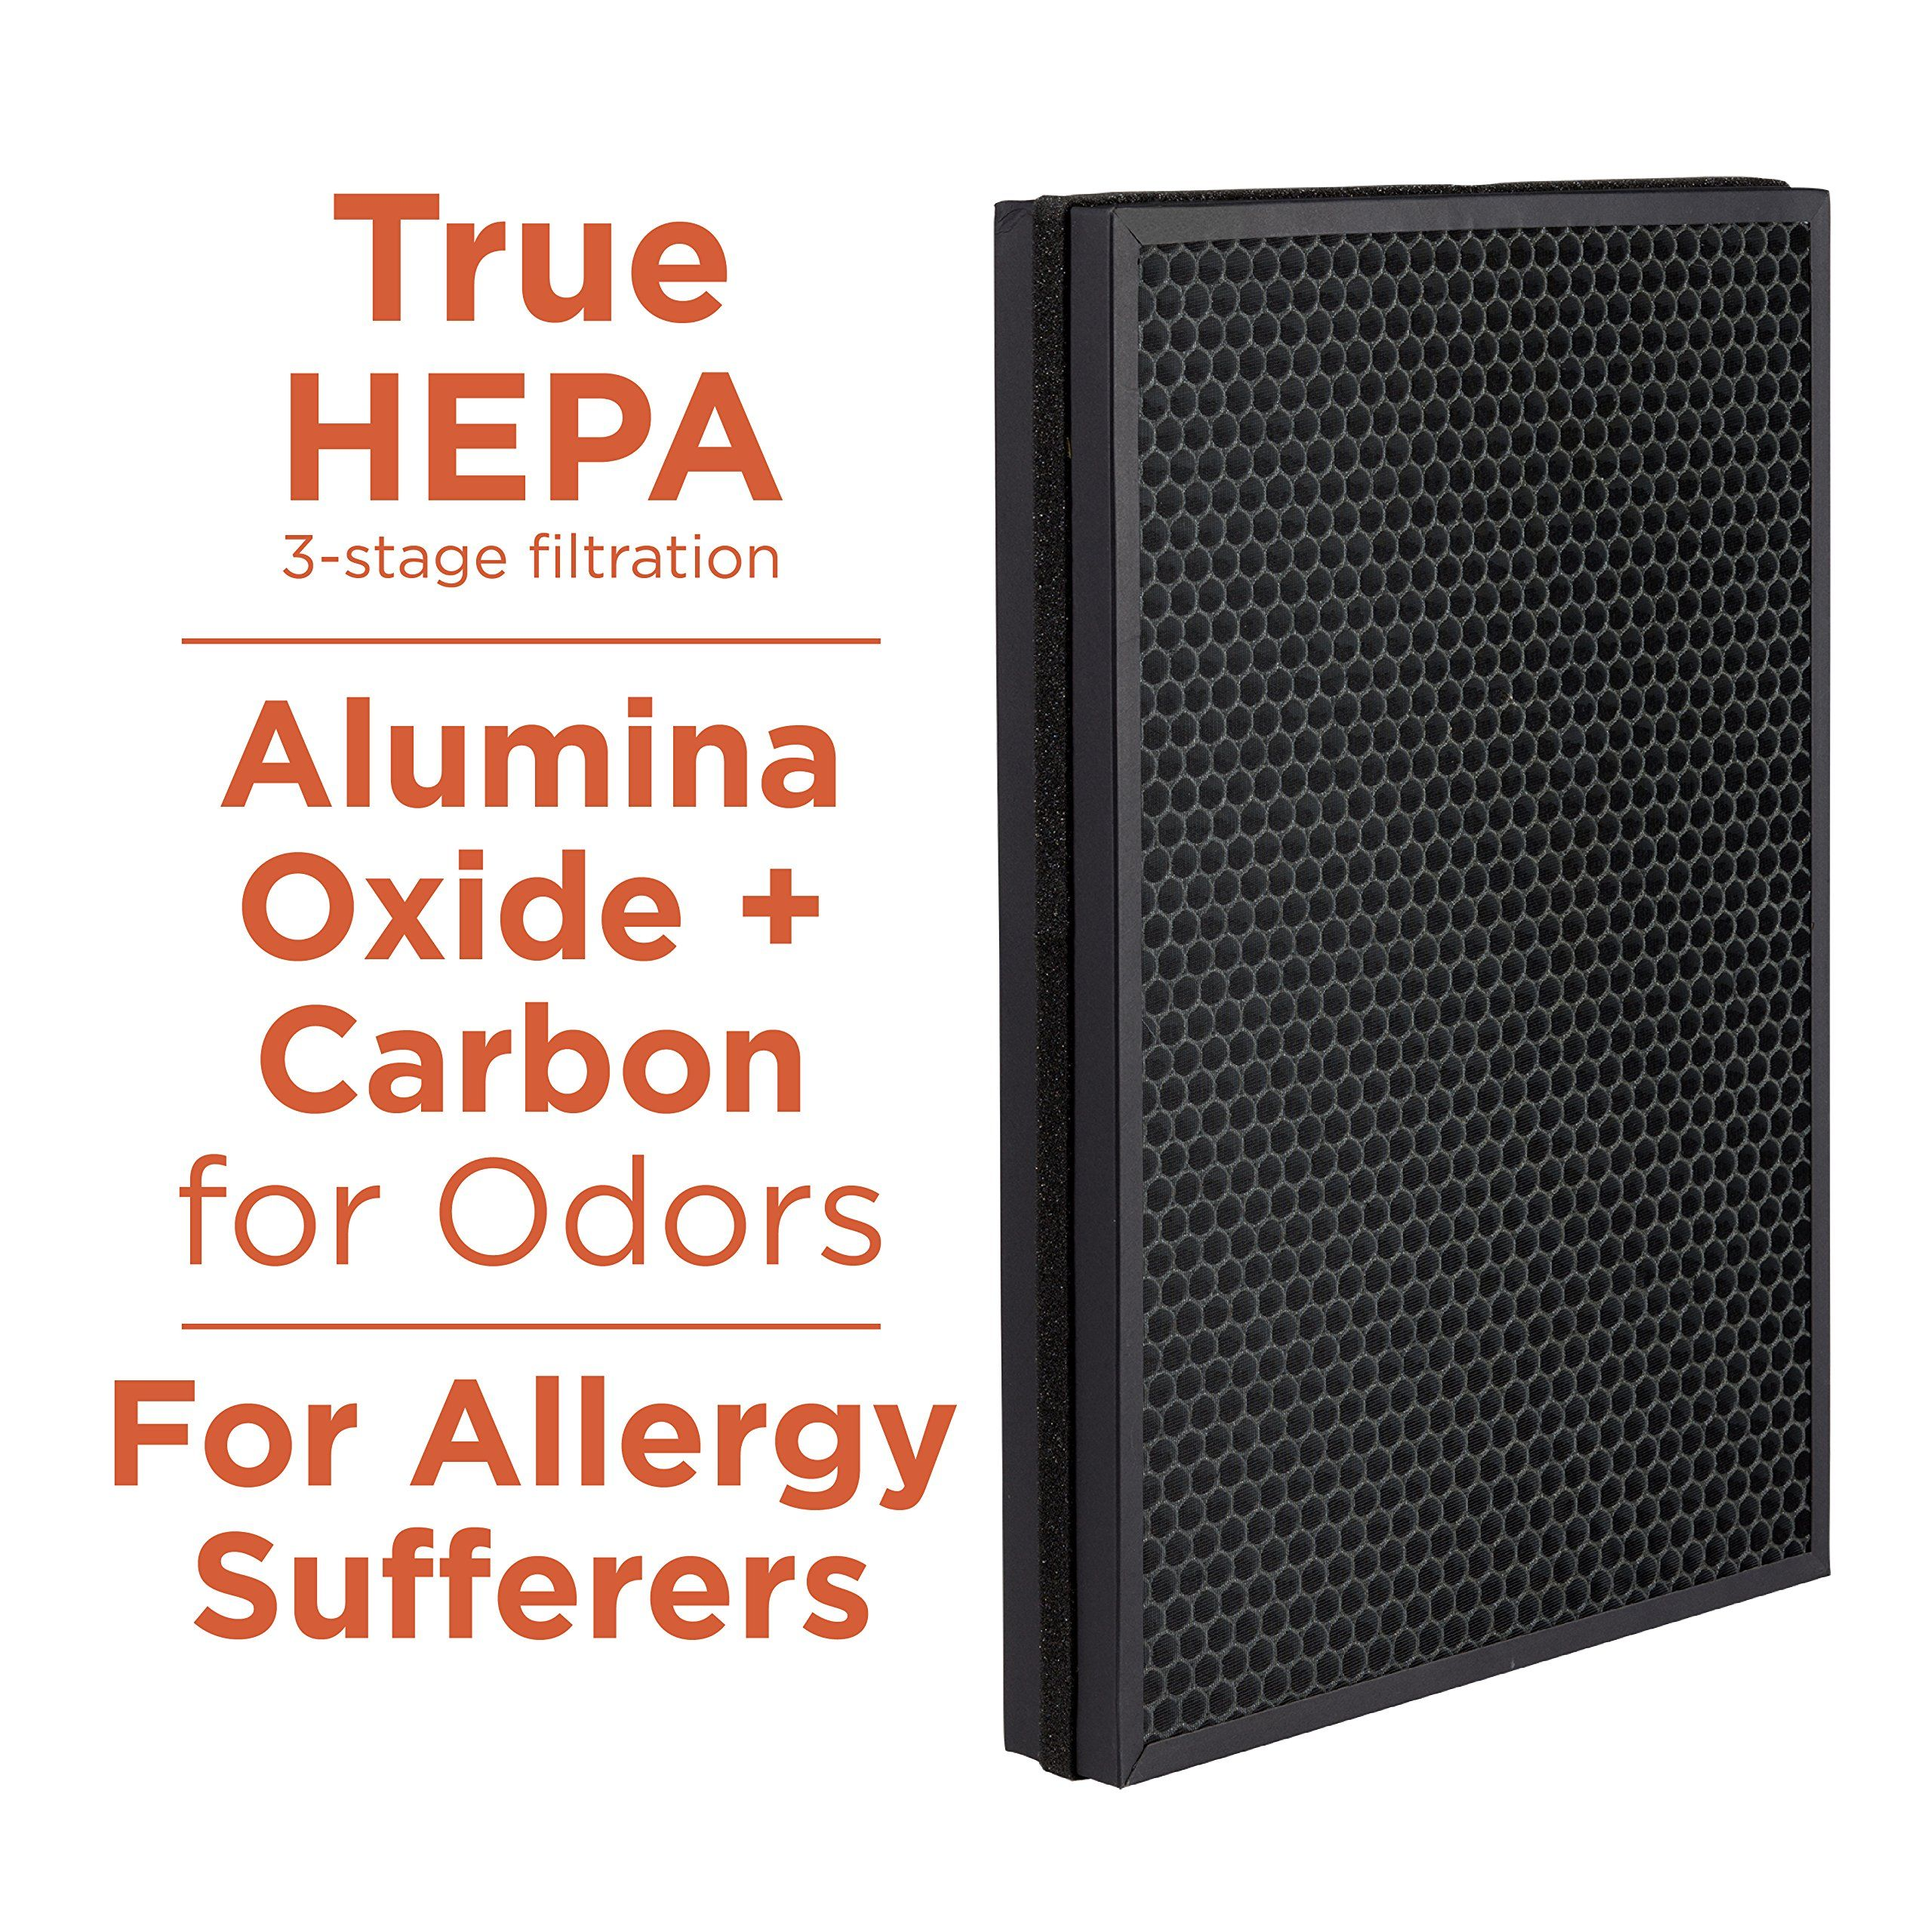 Aprilaire Allergy9550 True HEPA Air Purifier Replacement